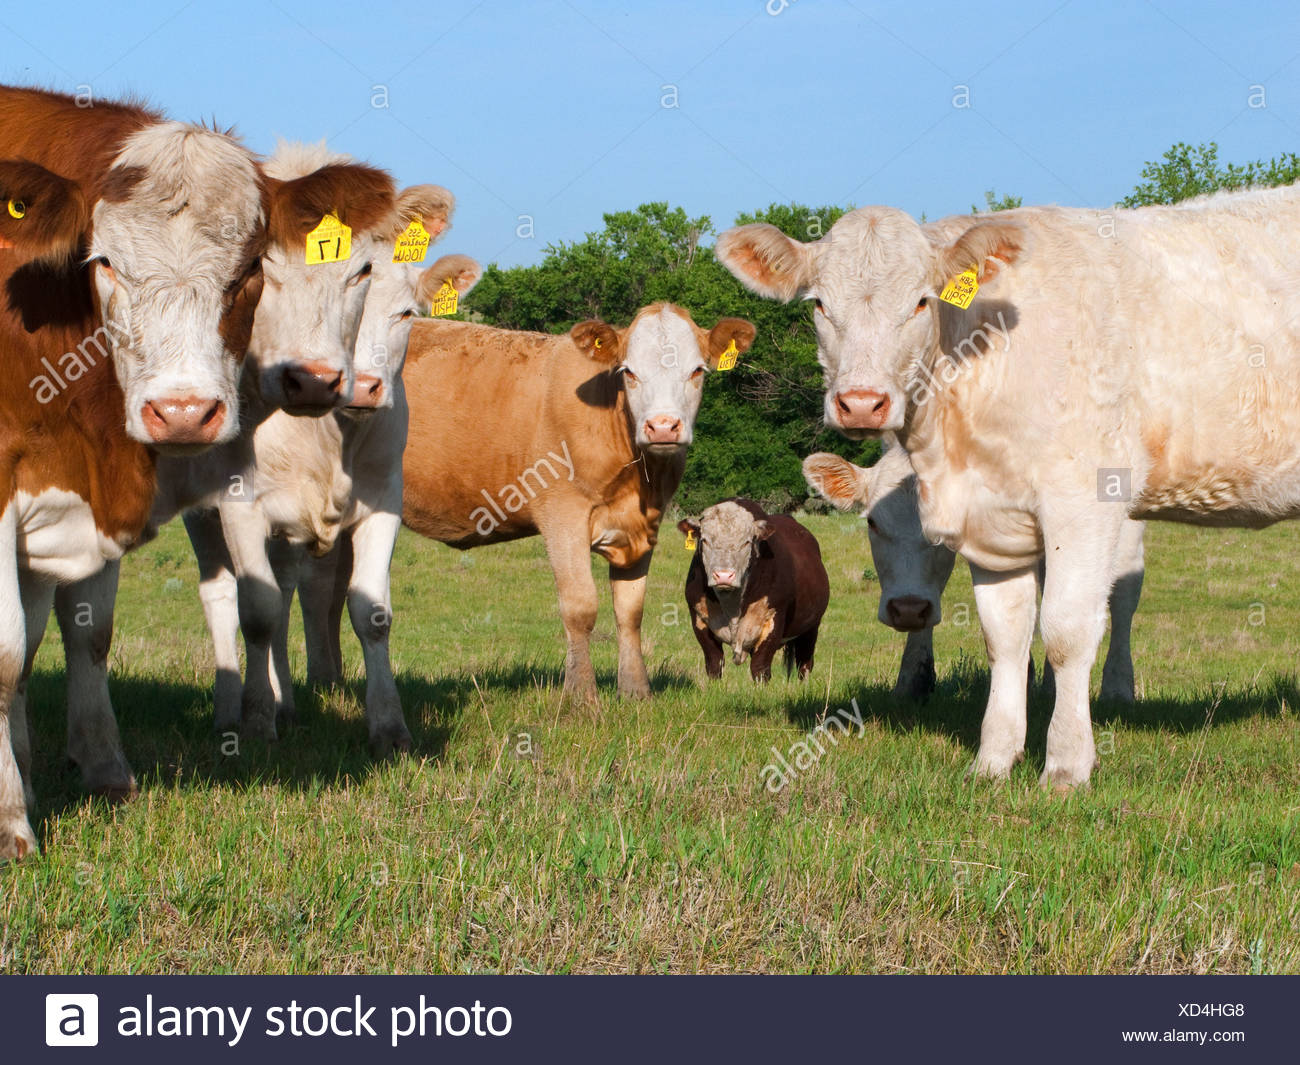 Livestock - Curious mixed breed beef cows on a green pasture / Alberta, Canada. - Stock Image